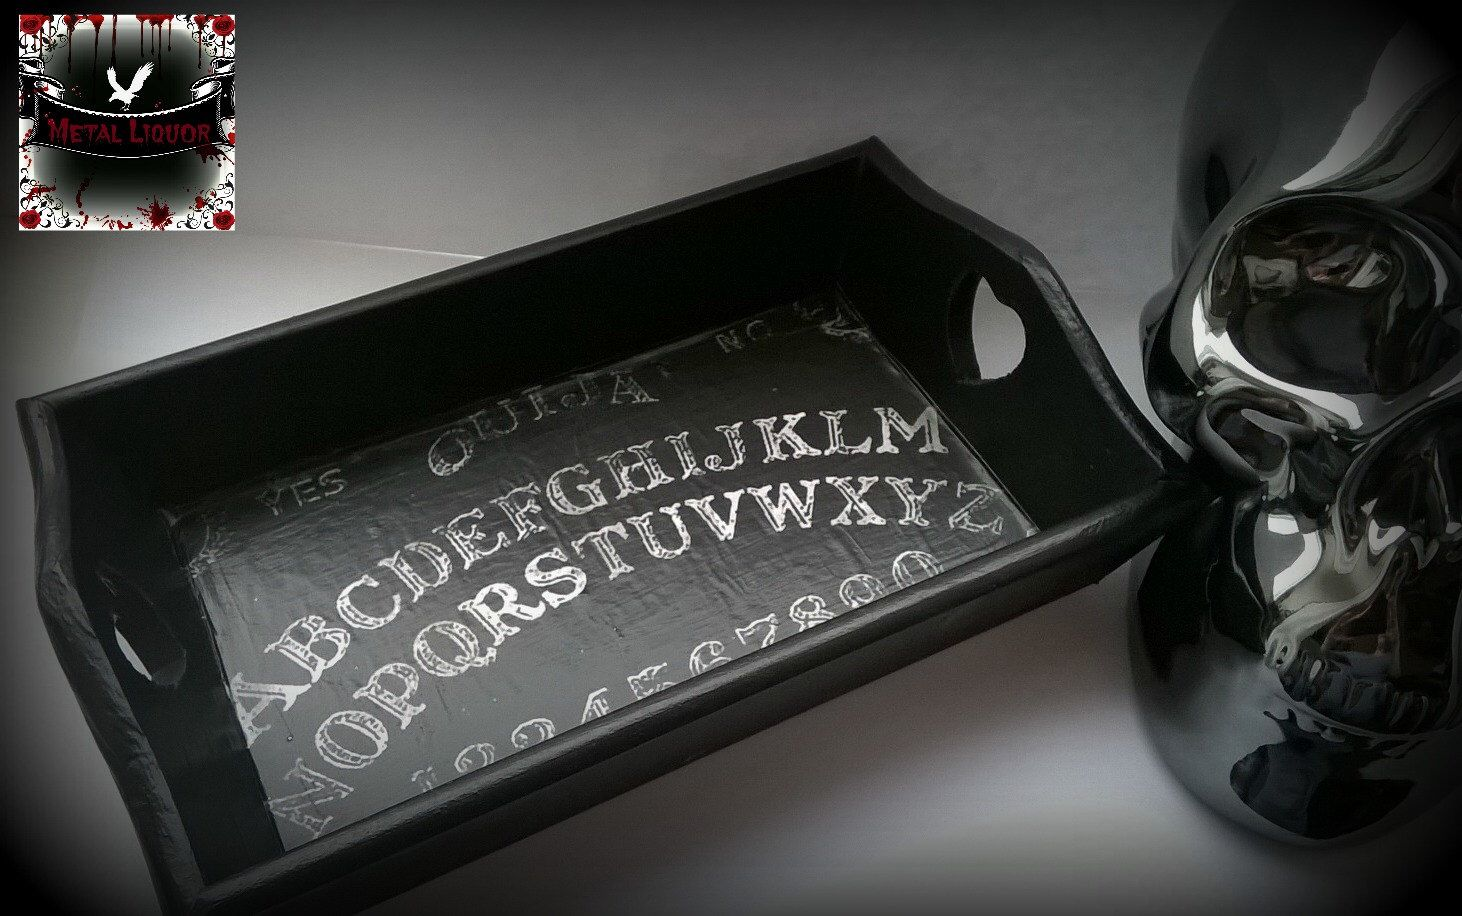 Ouija Board Ring Tray by MetalLiquor on Etsy https://www.etsy.com/listing/254047368/ouija-board-ring-tray